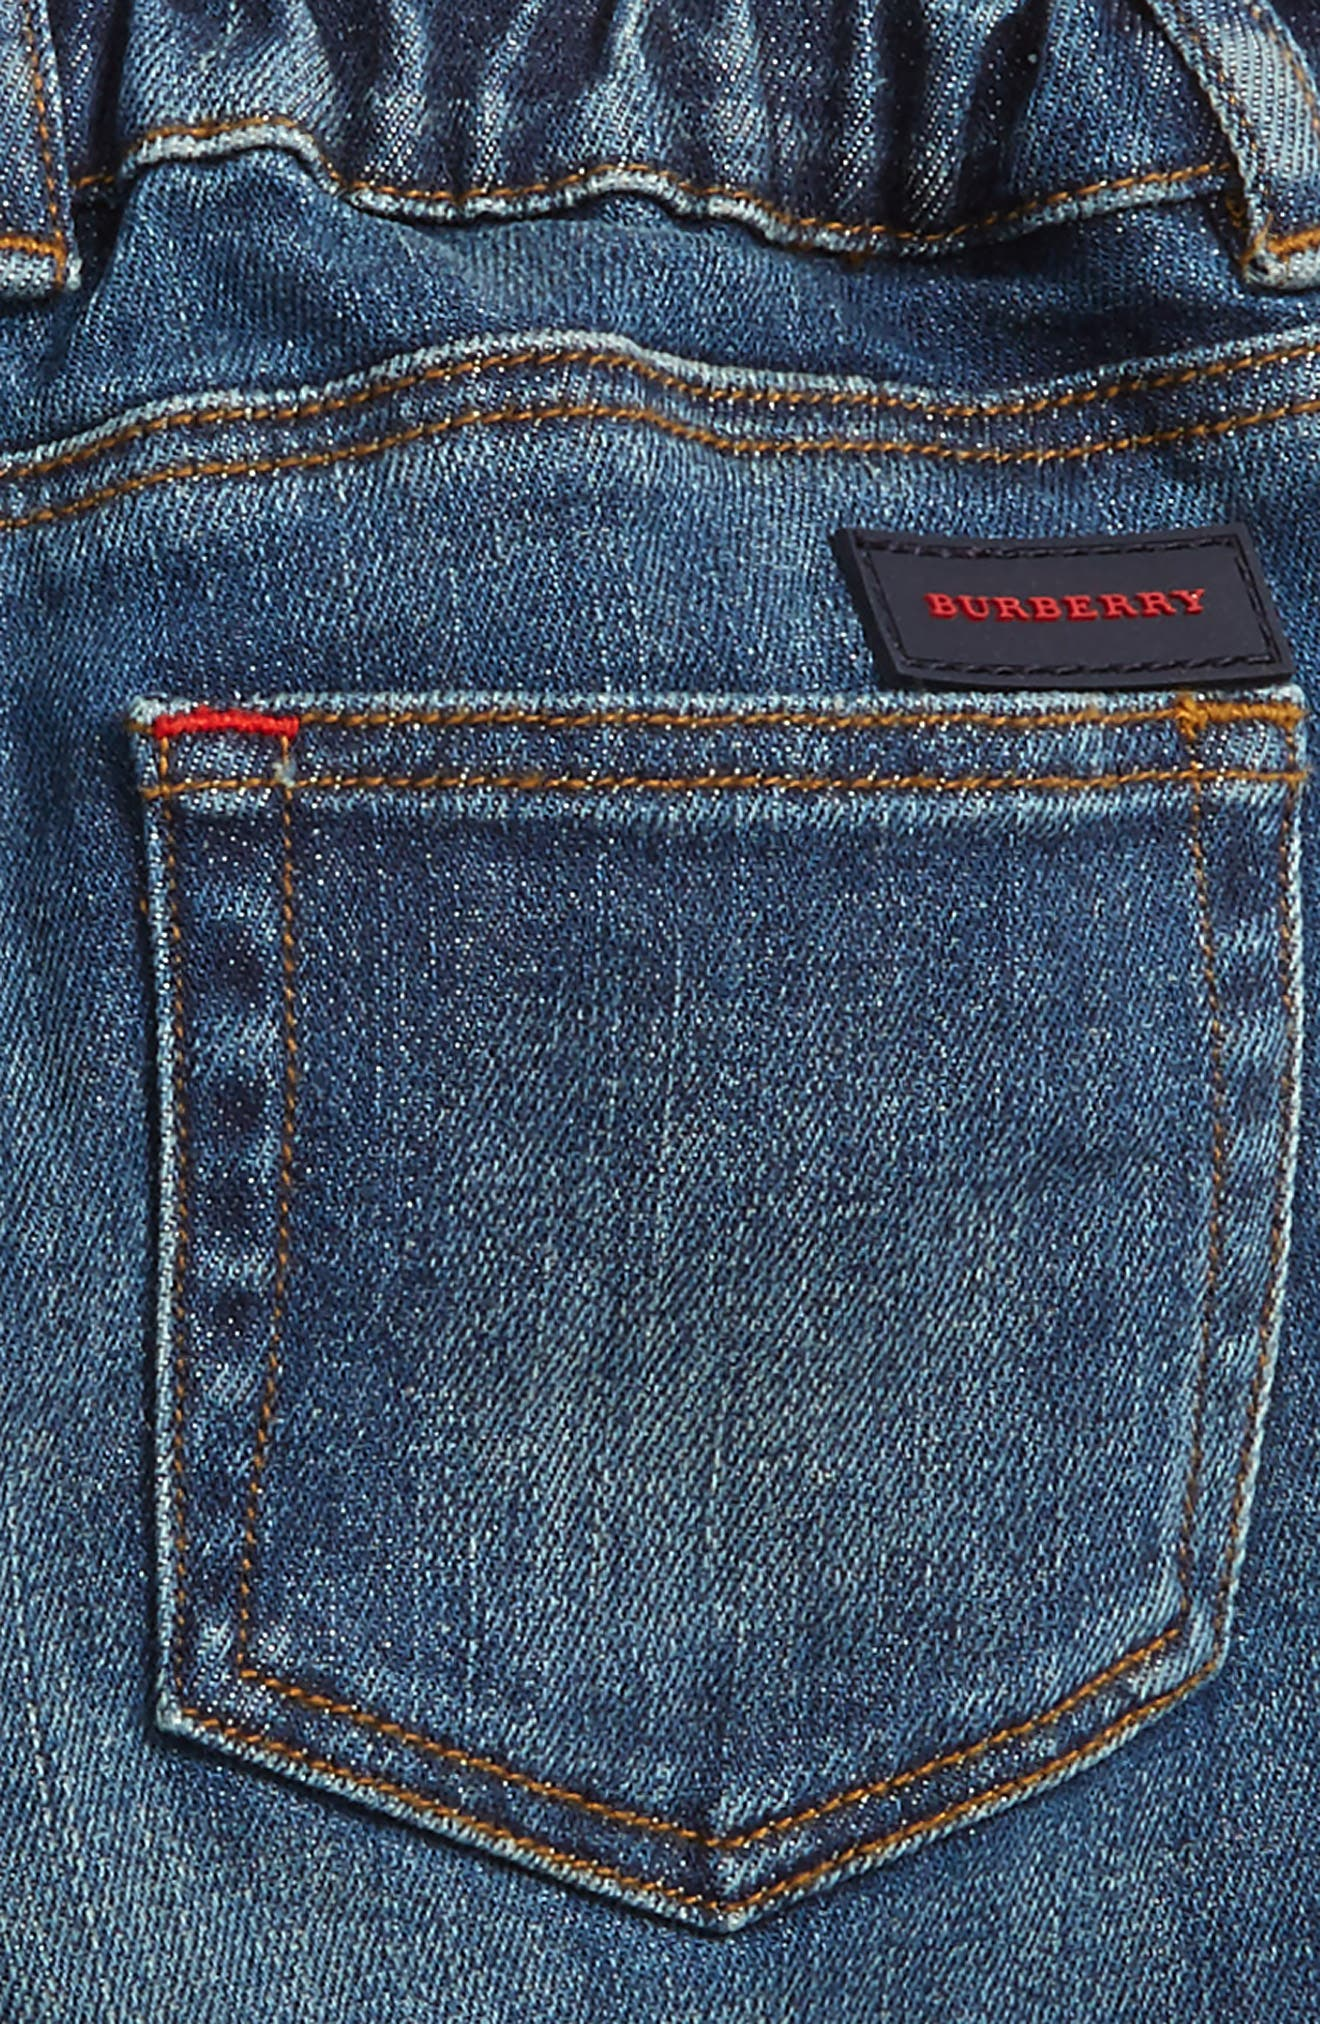 Check Cuff Relaxed Jeans,                             Alternate thumbnail 8, color,